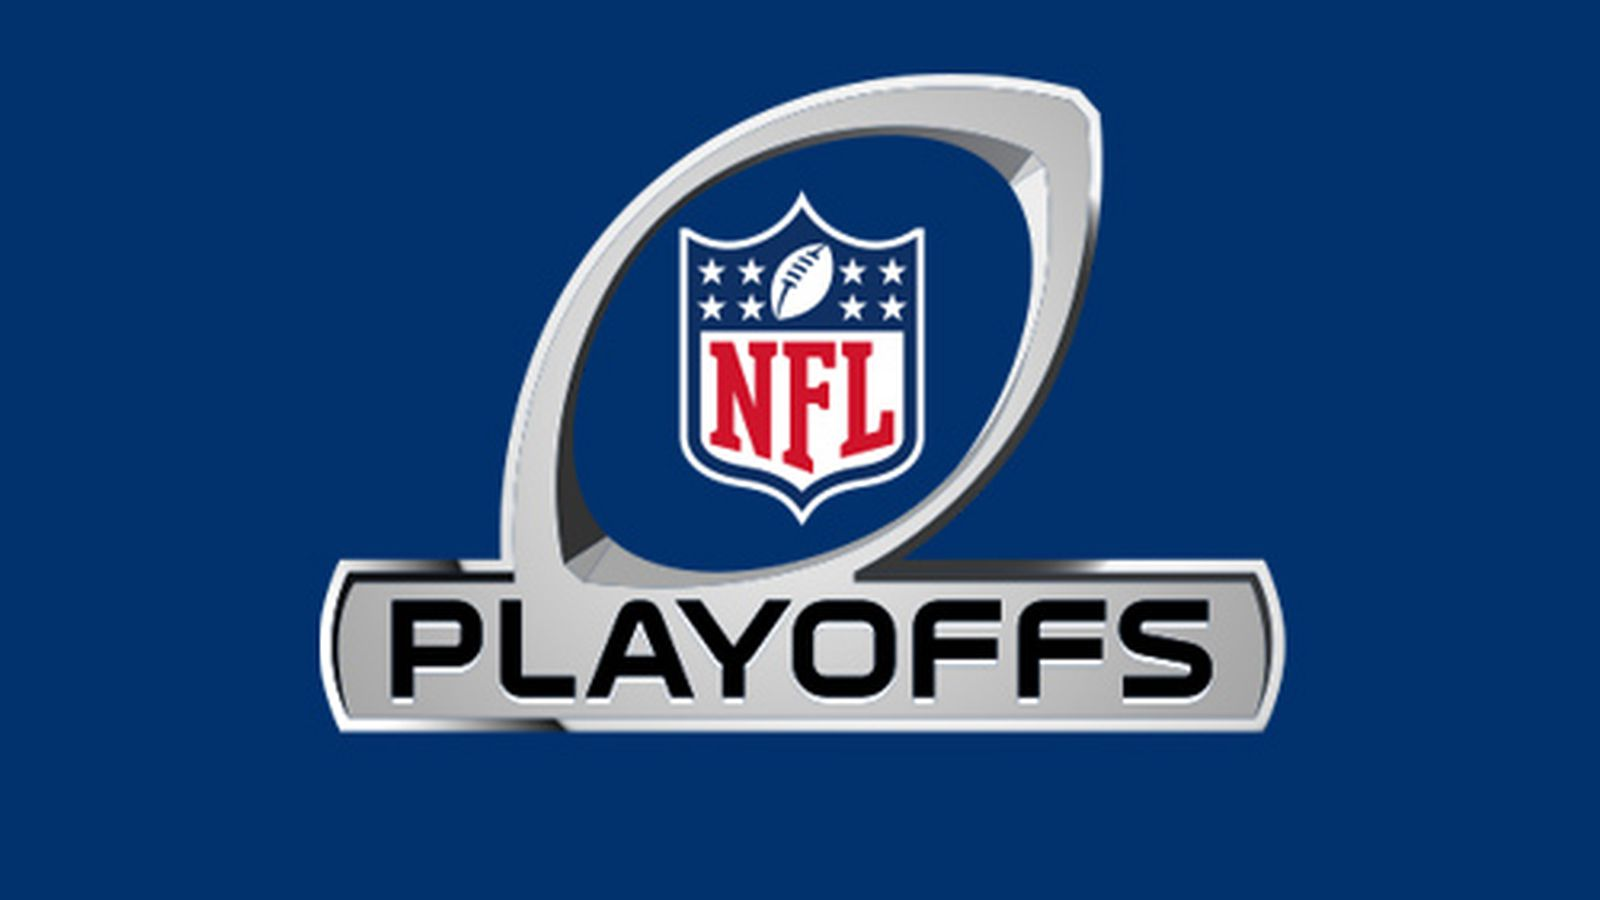 NFL Playoff Picture, Standings and Clinch Scenarios ... | 1600 x 900 jpeg 60kB